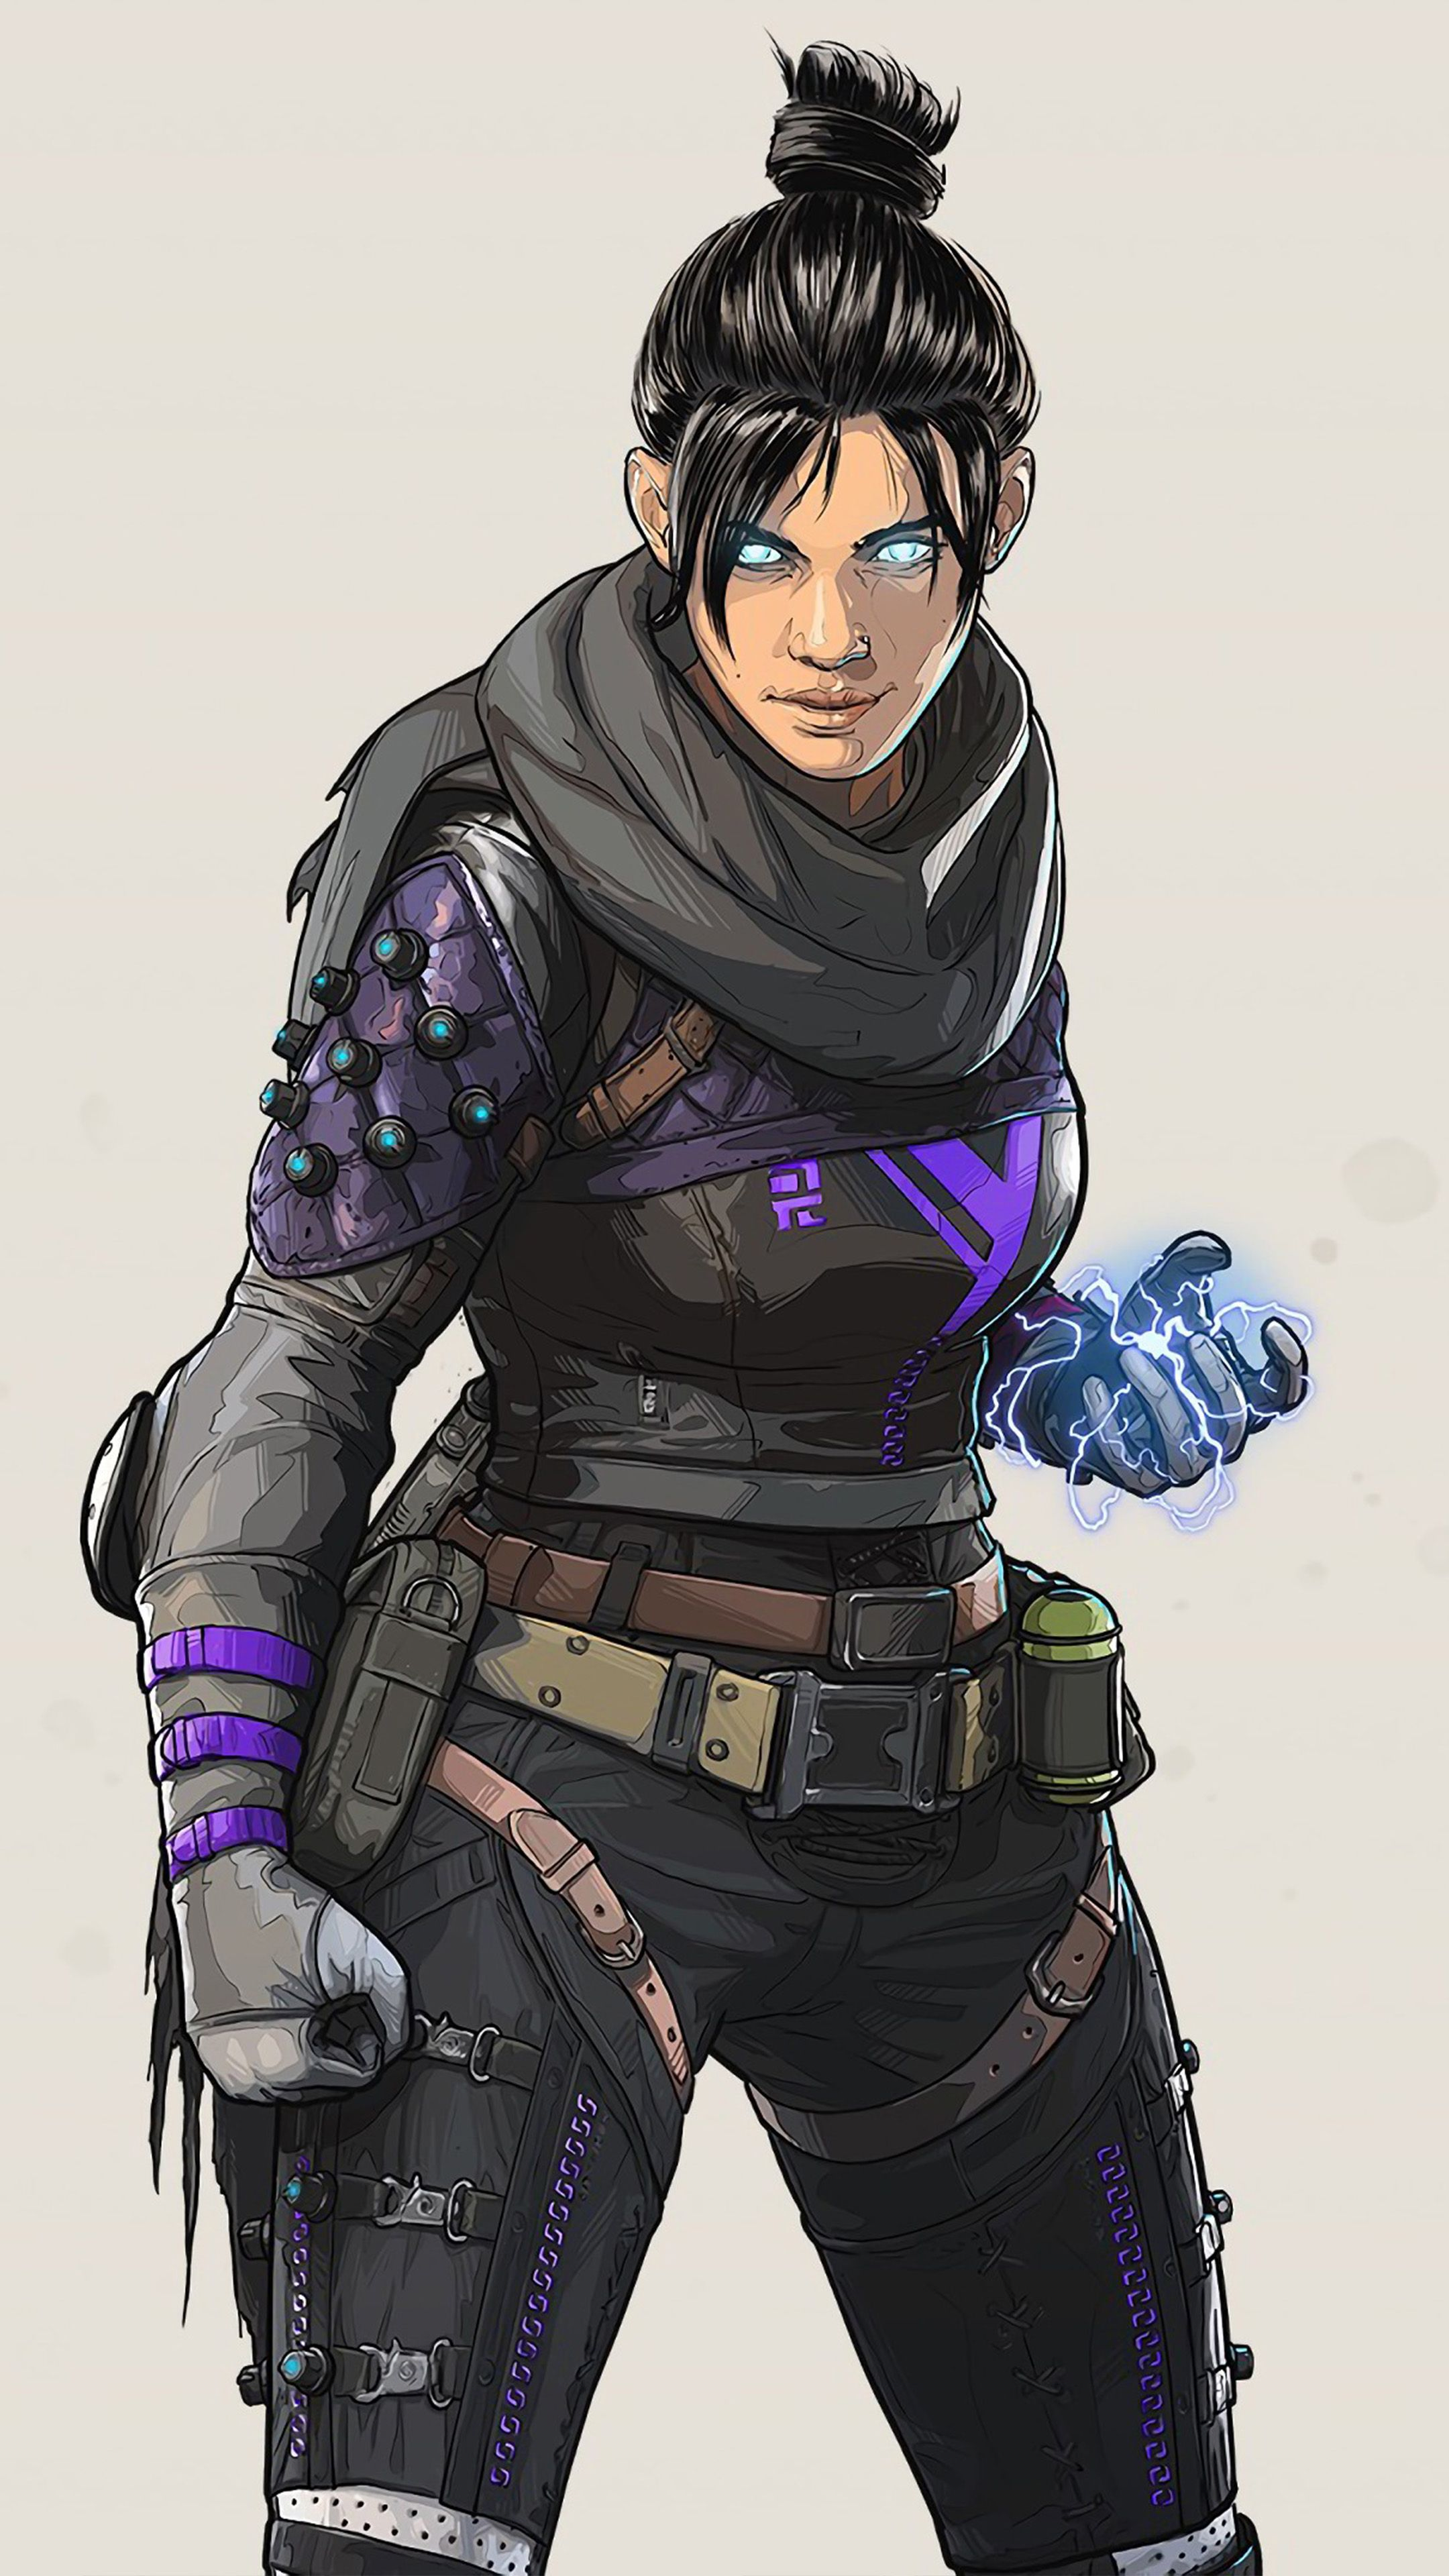 Wraith Apex Legends Mobile legend wallpaper, Apex